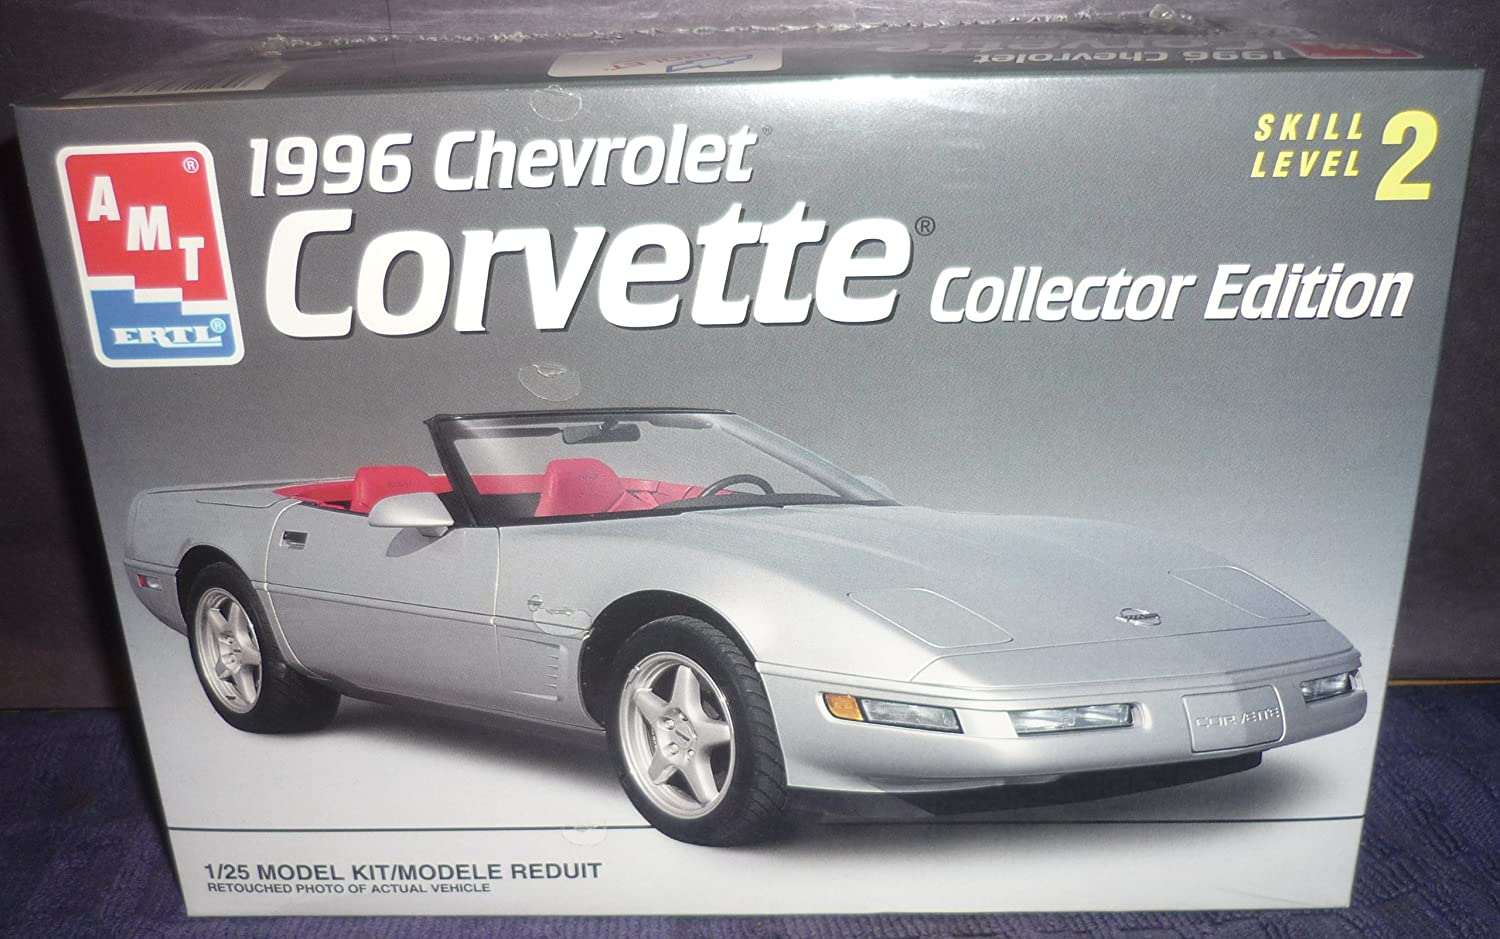 8031 AMT  Ertl 1996 Chevrolet Corvette Collector Edition 1 25 Scale Plastic Model Kit,Needs Assembly by AMT Ertl